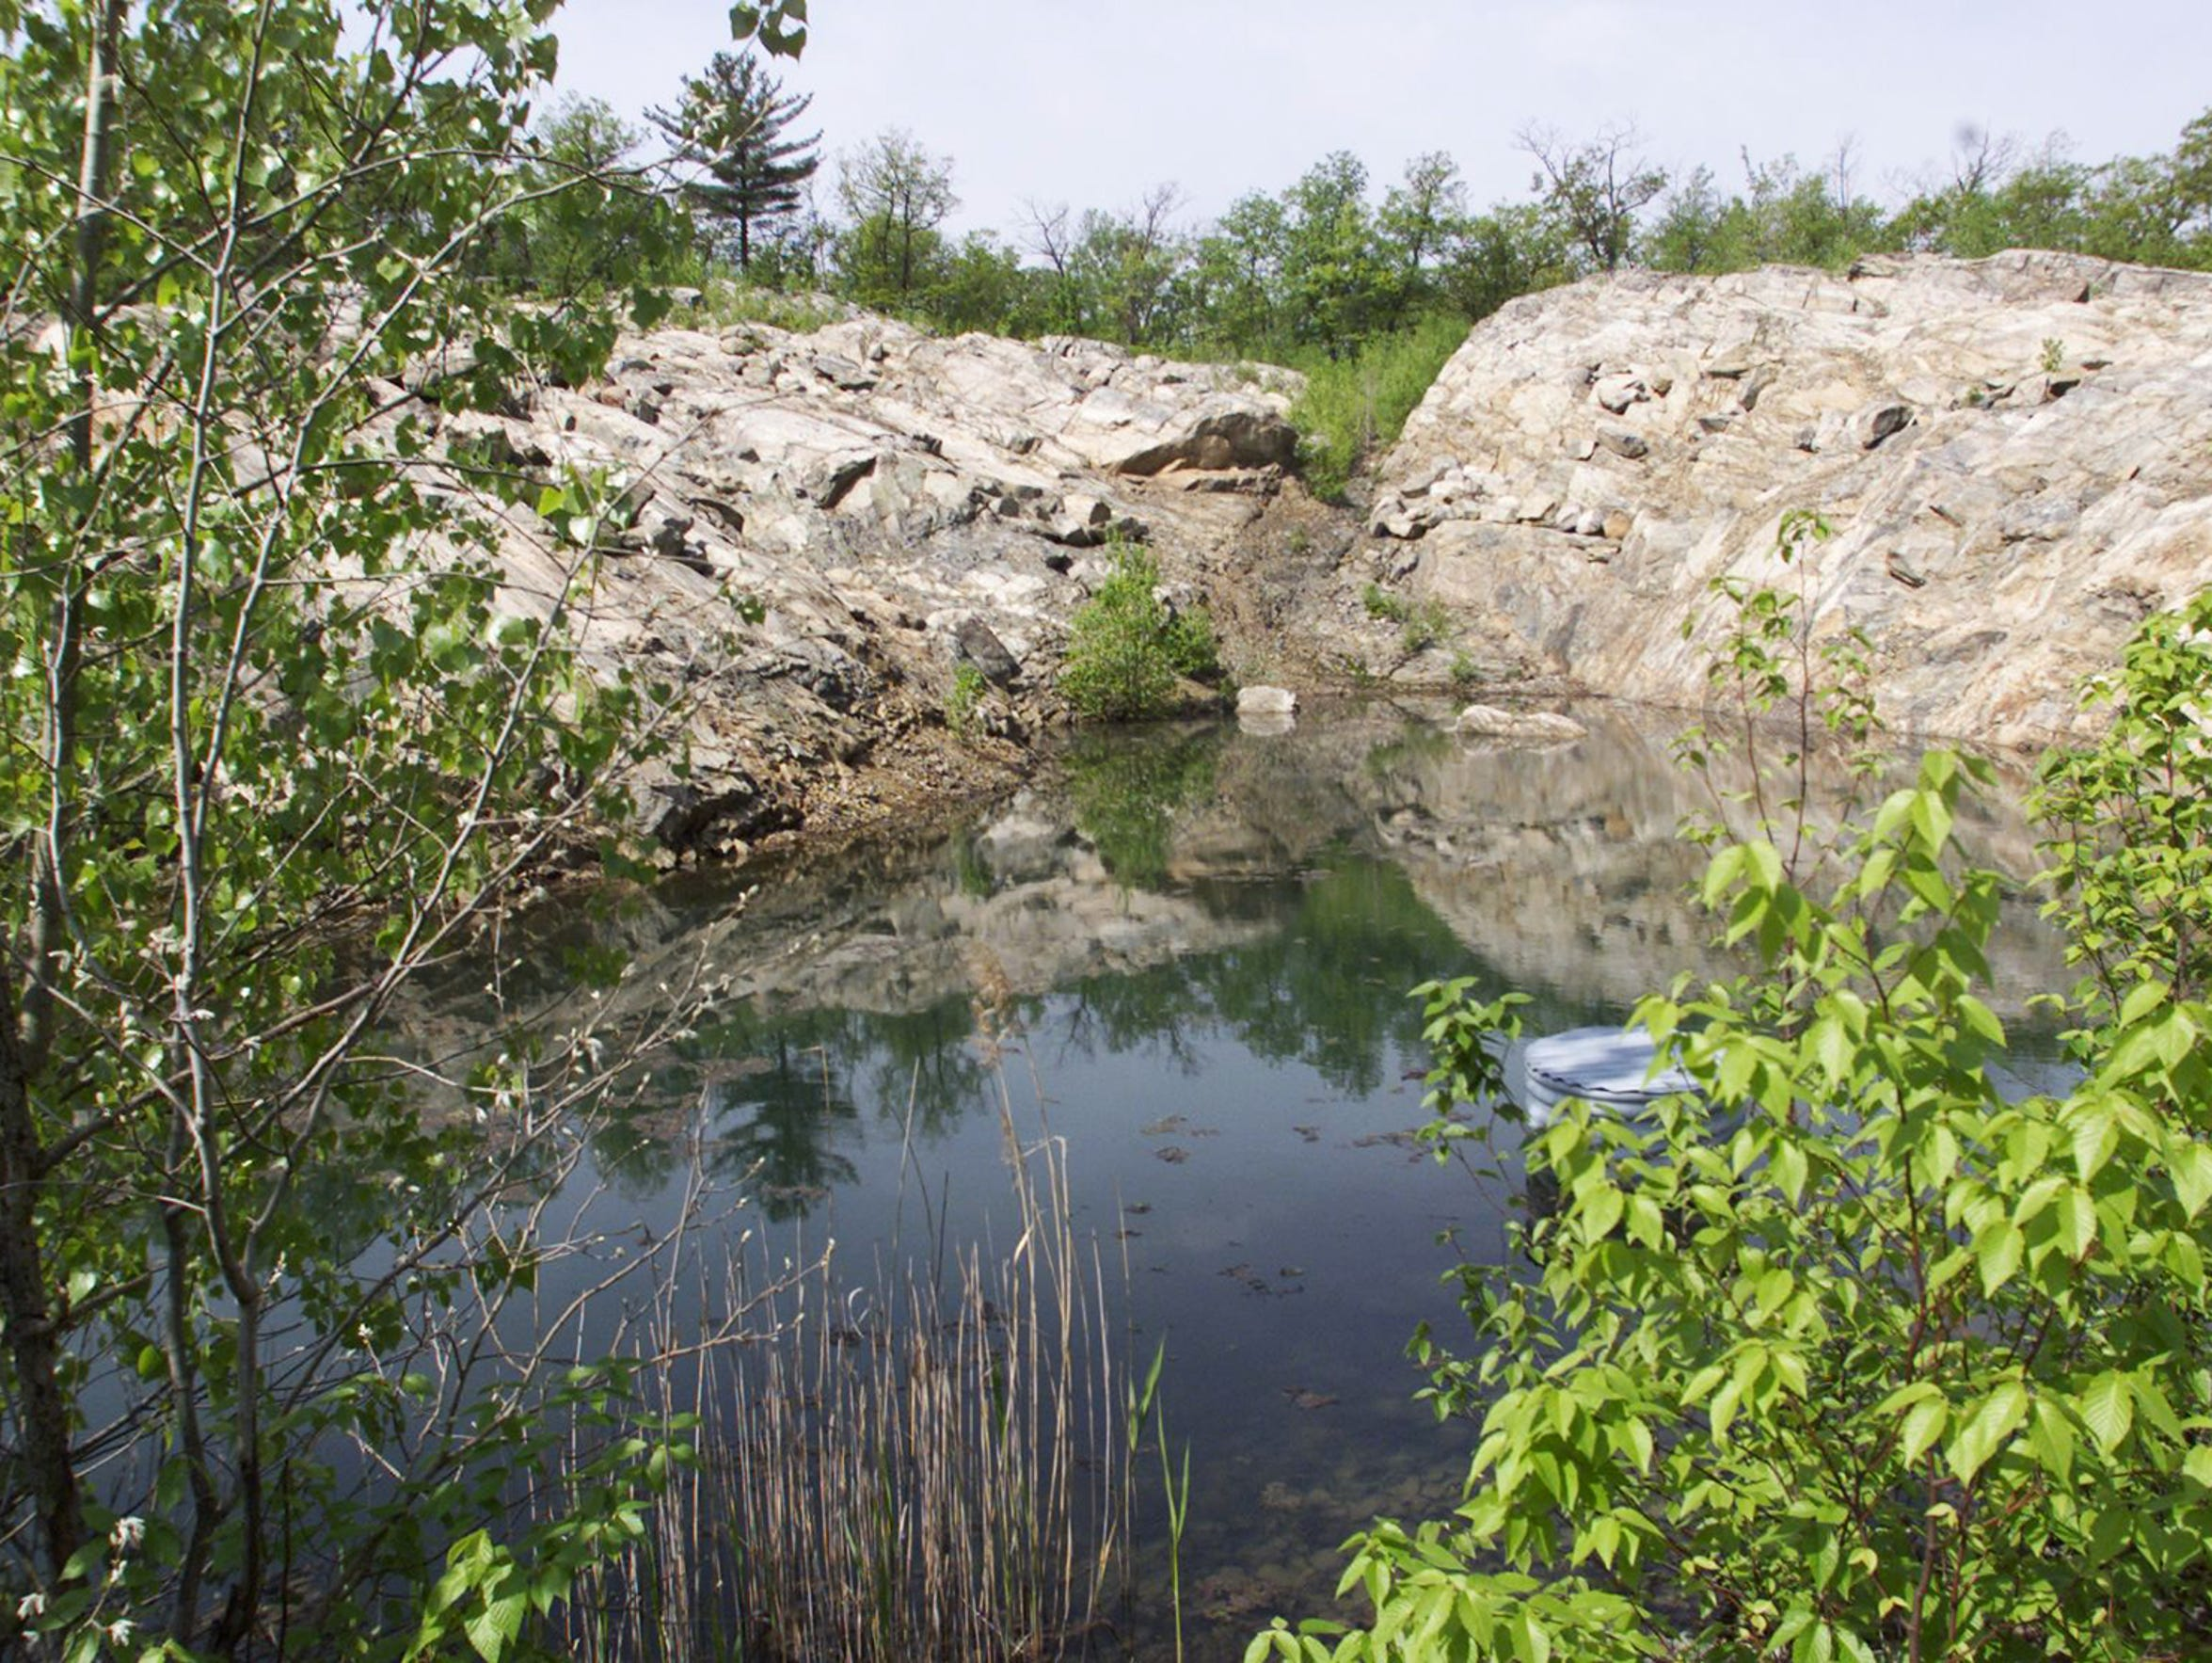 The shooting pond at the former DuPont munitions site